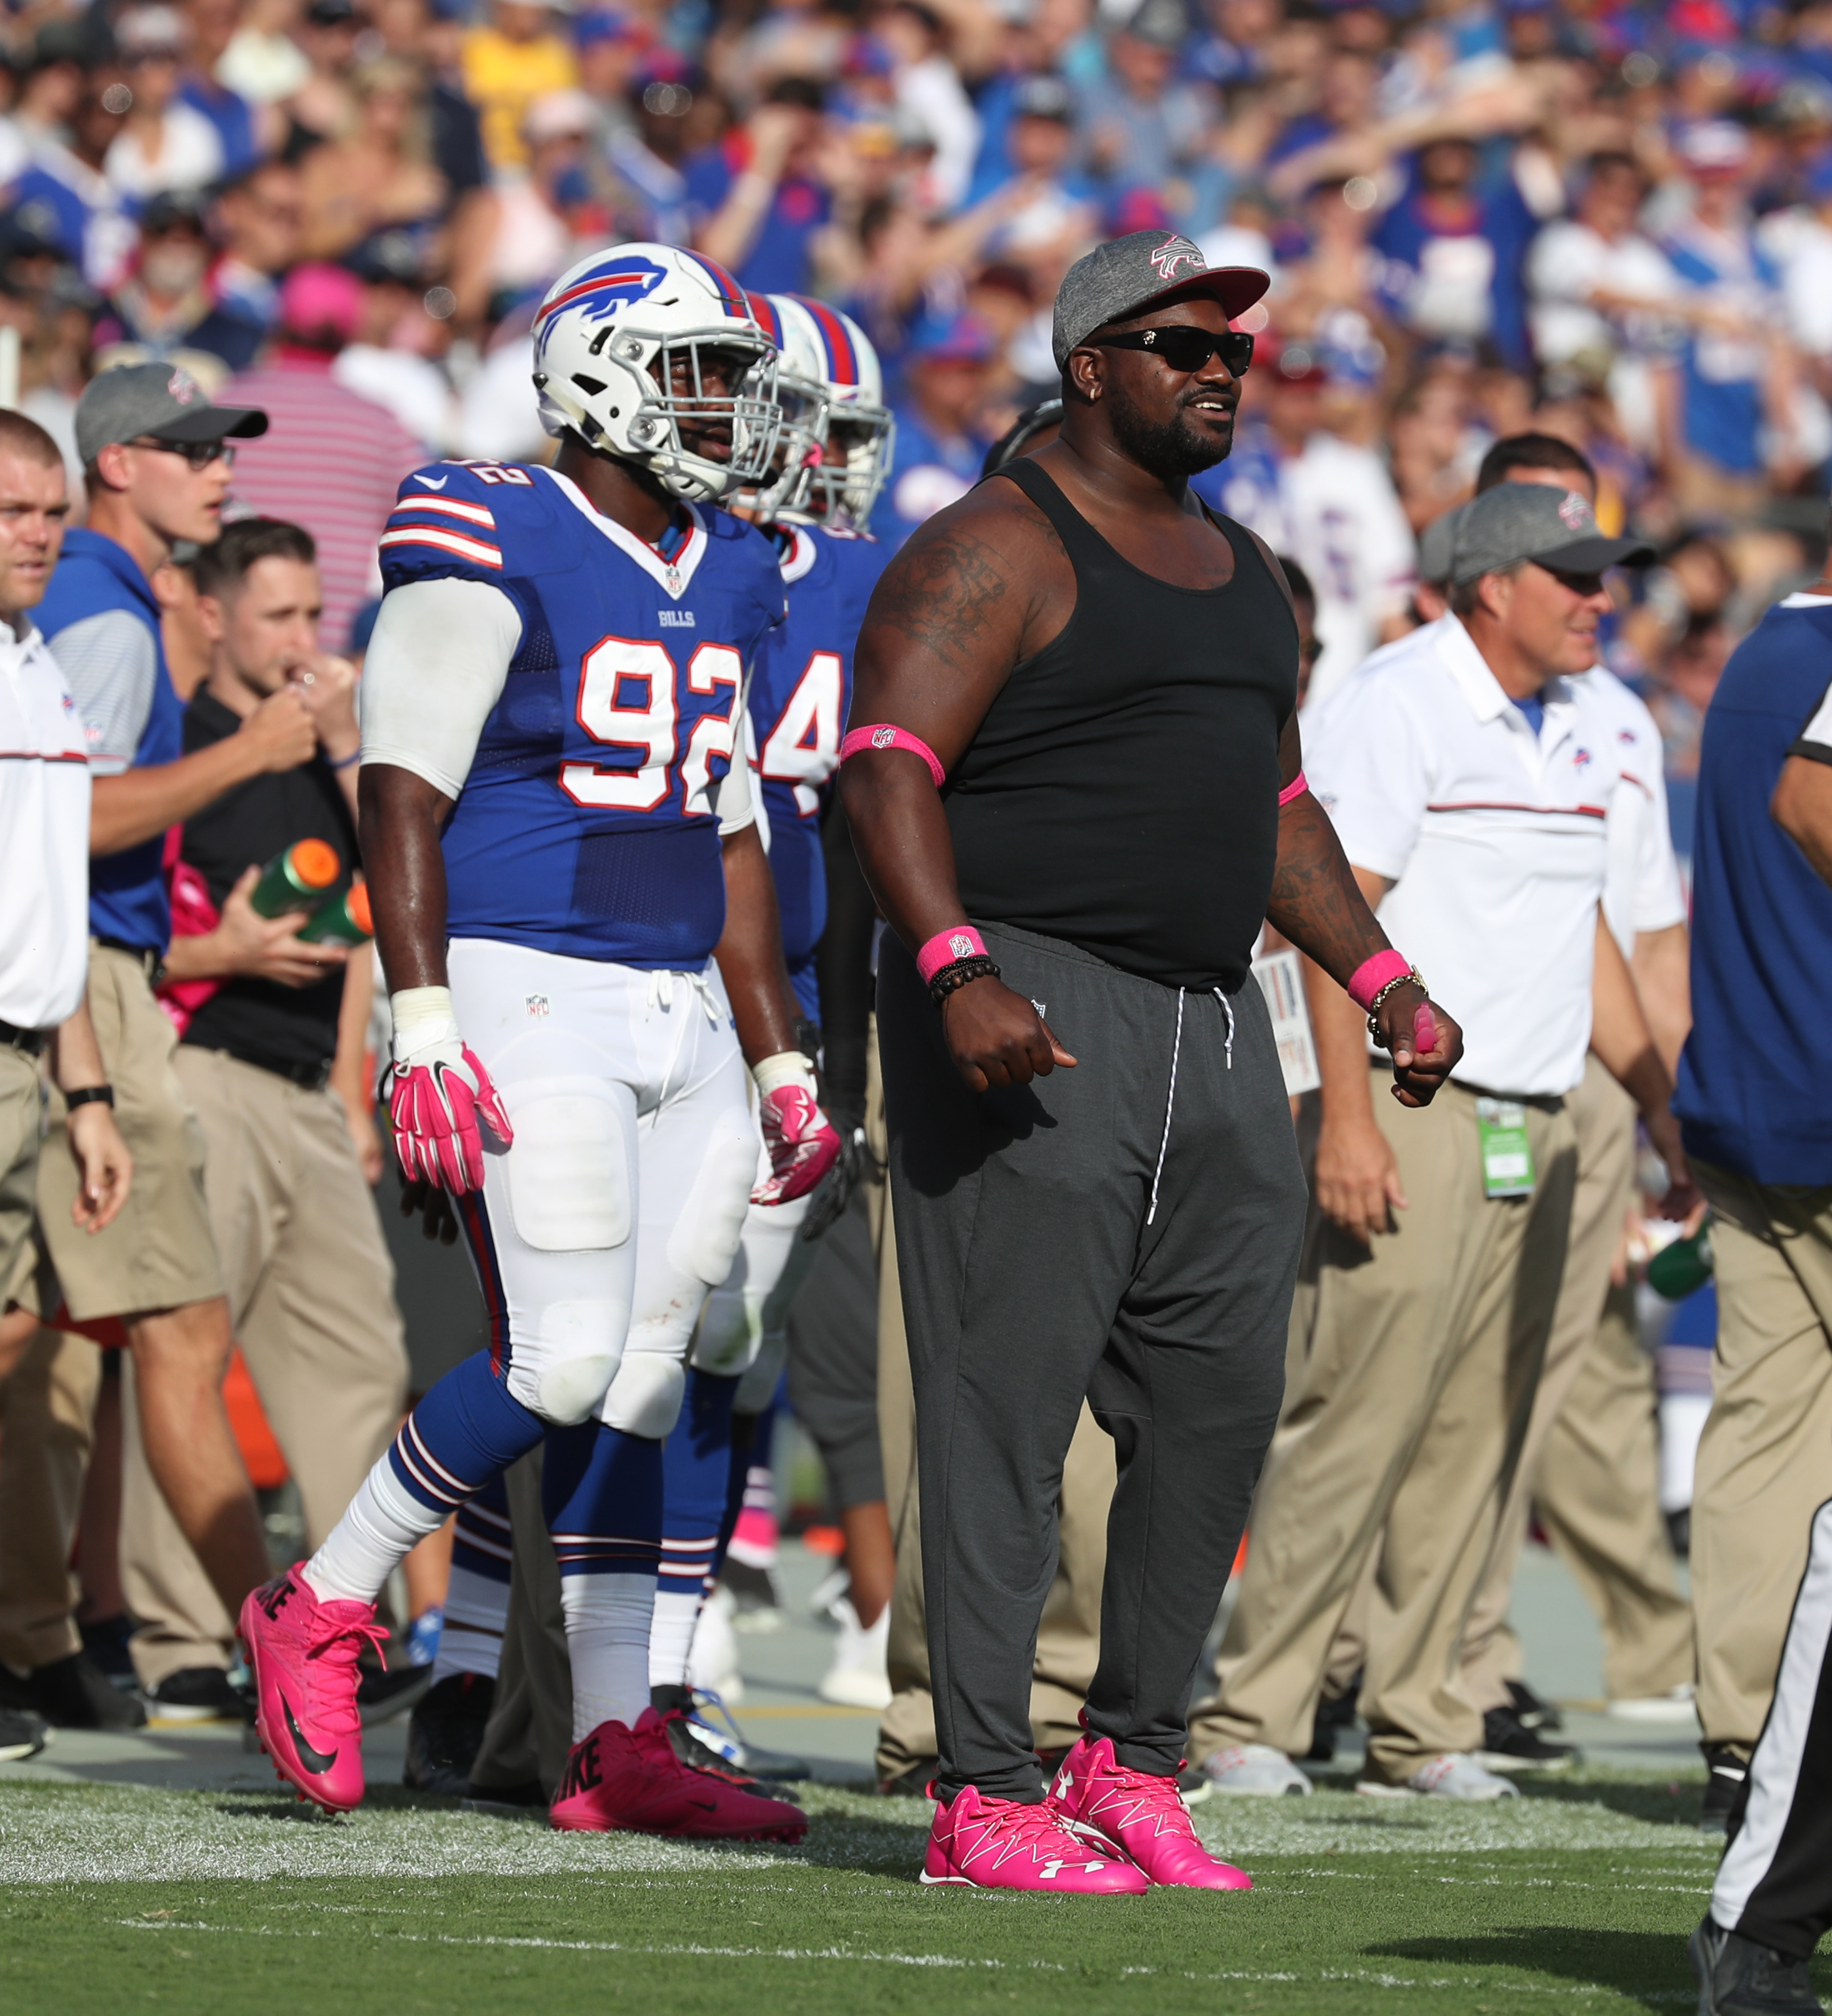 Bills defensive tackle Marcell Dareus missed half of last season due to a suspension and injuries. (James P. McCoy/ Buffalo News)